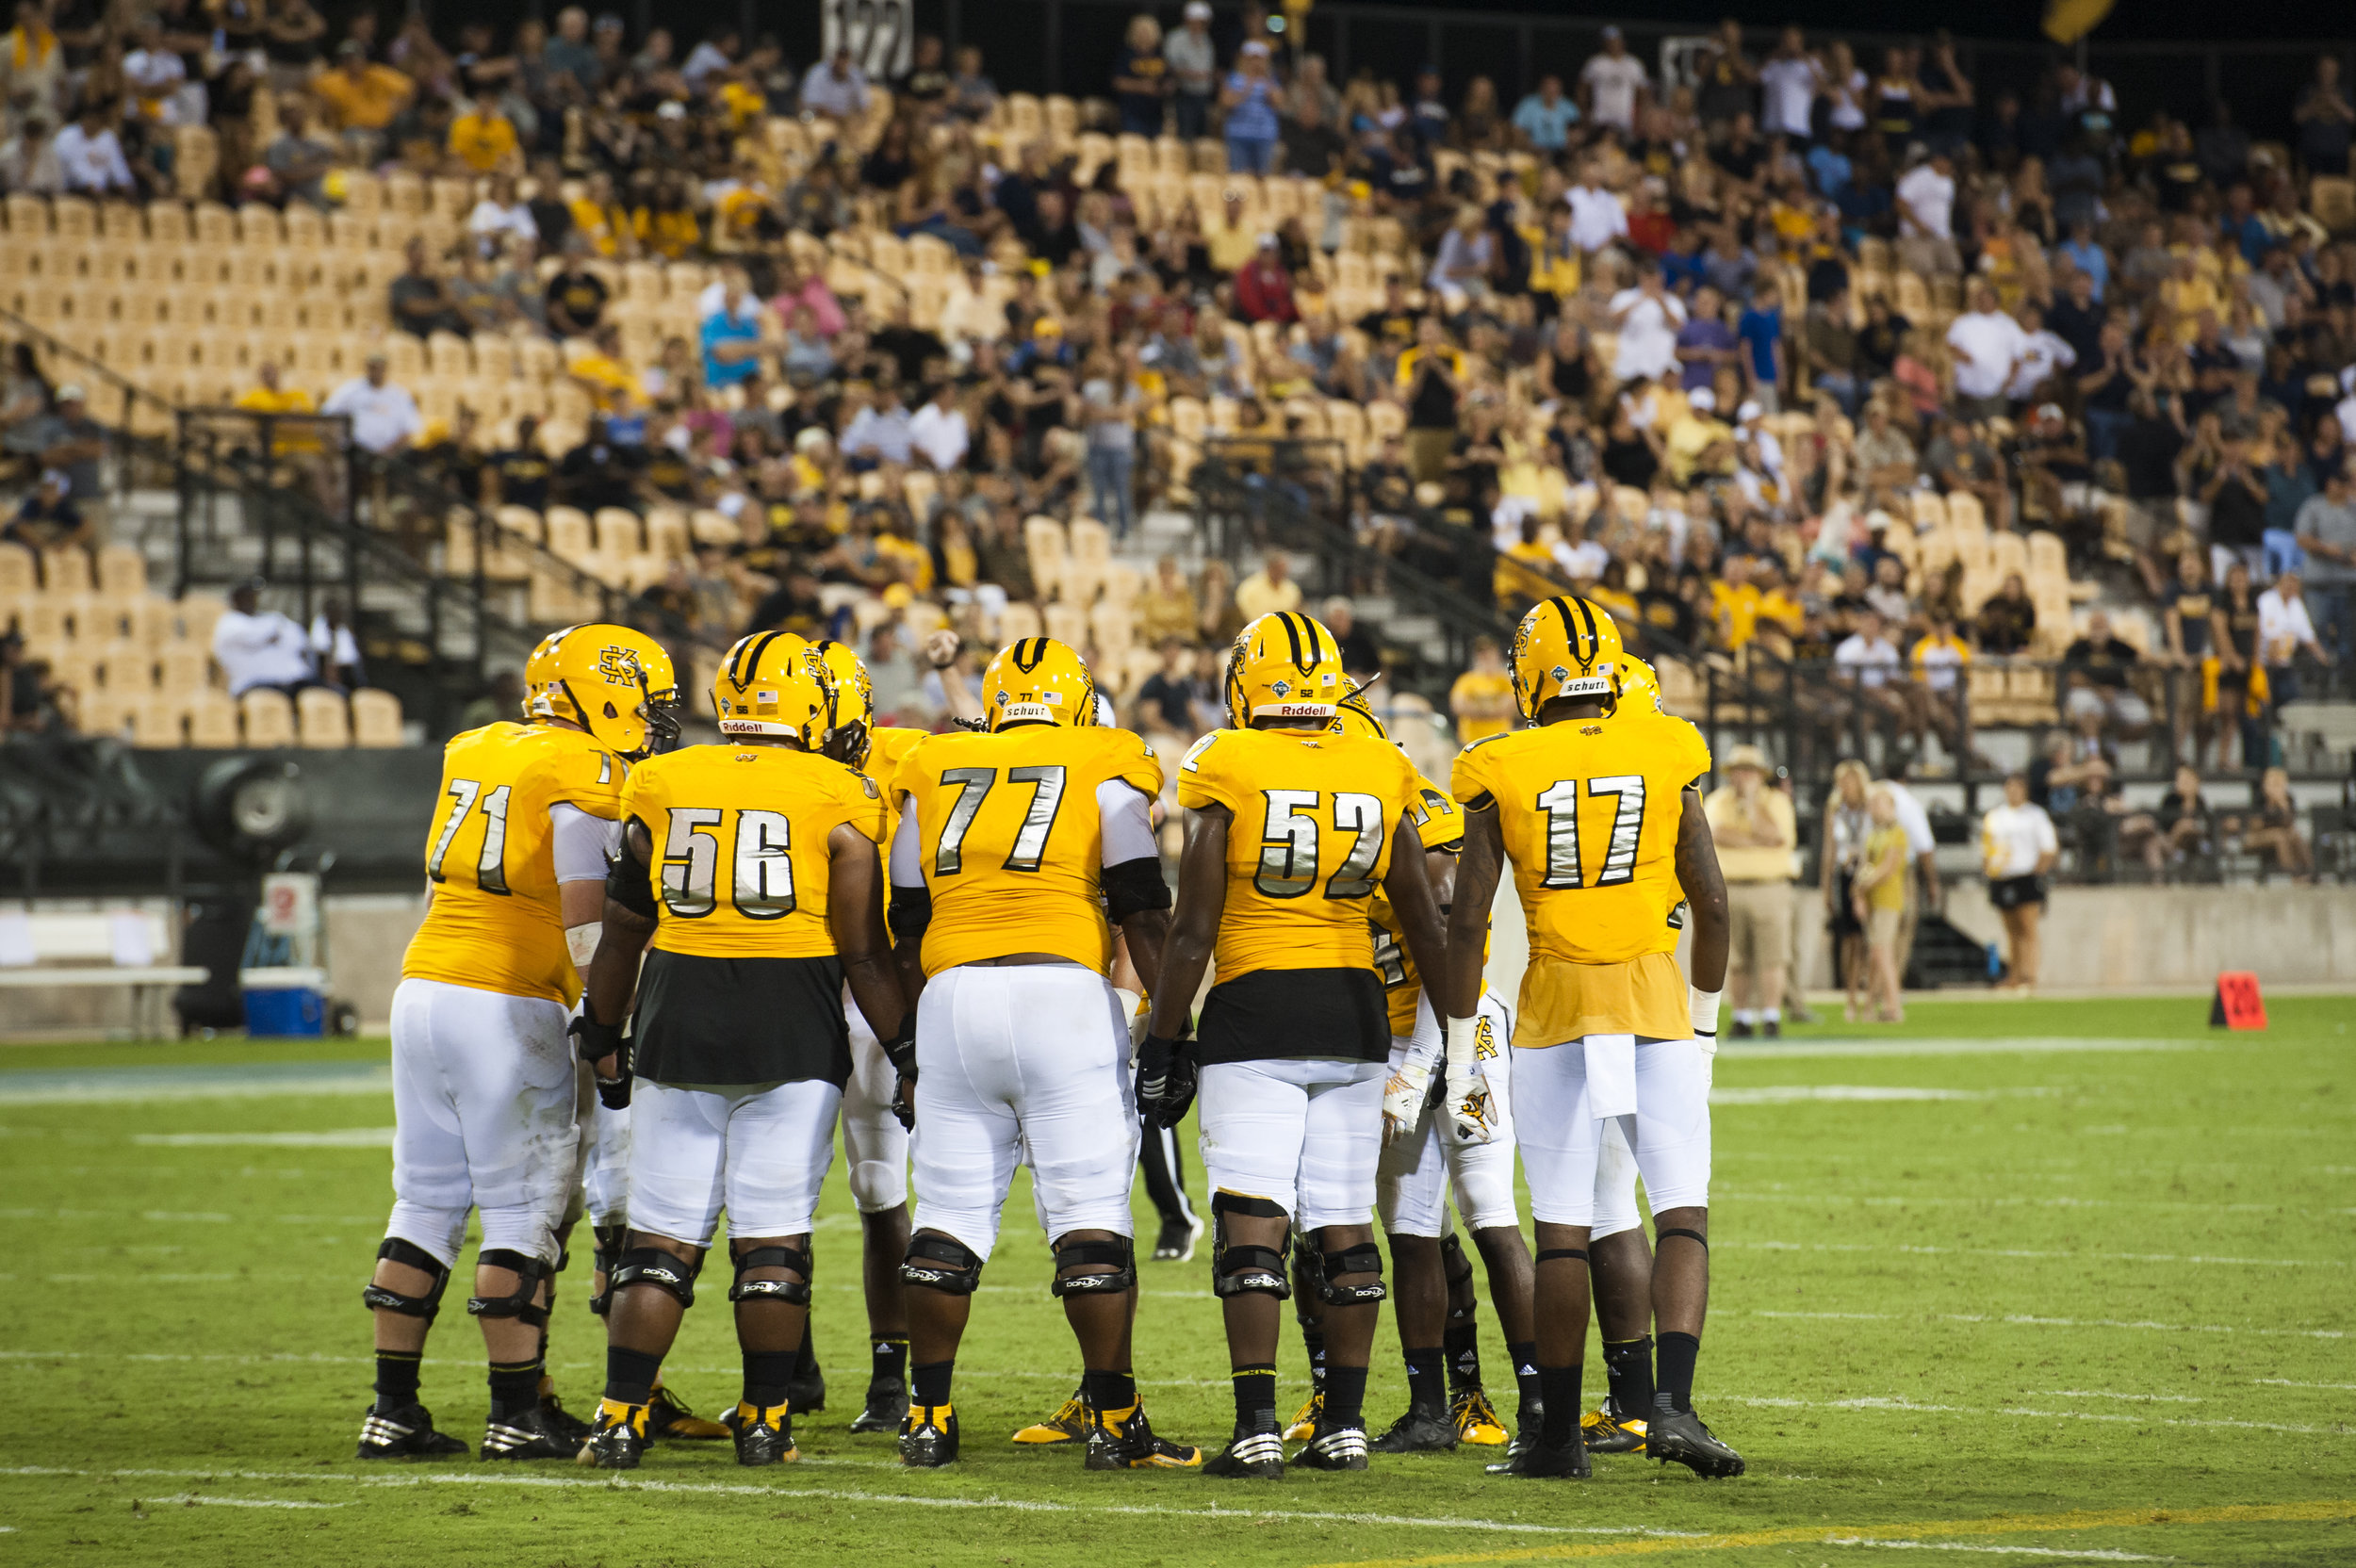 2016_Kennesaw_Football_v_ETS_LA_364.jpg